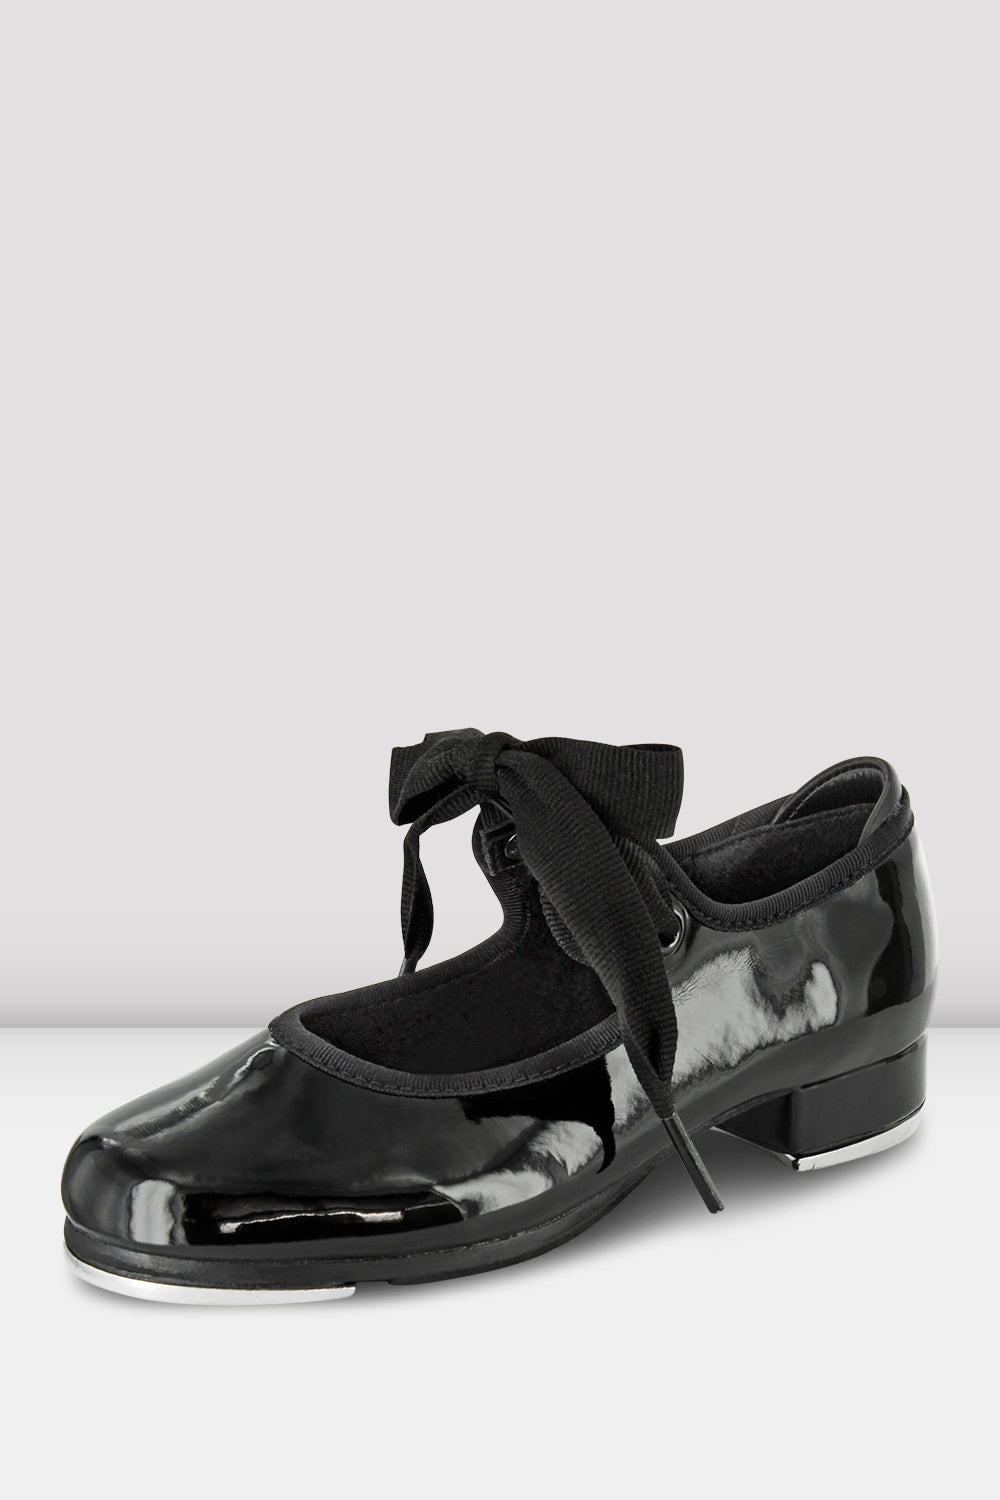 Girls Annie Tyette Tap Shoes - BLOCH US